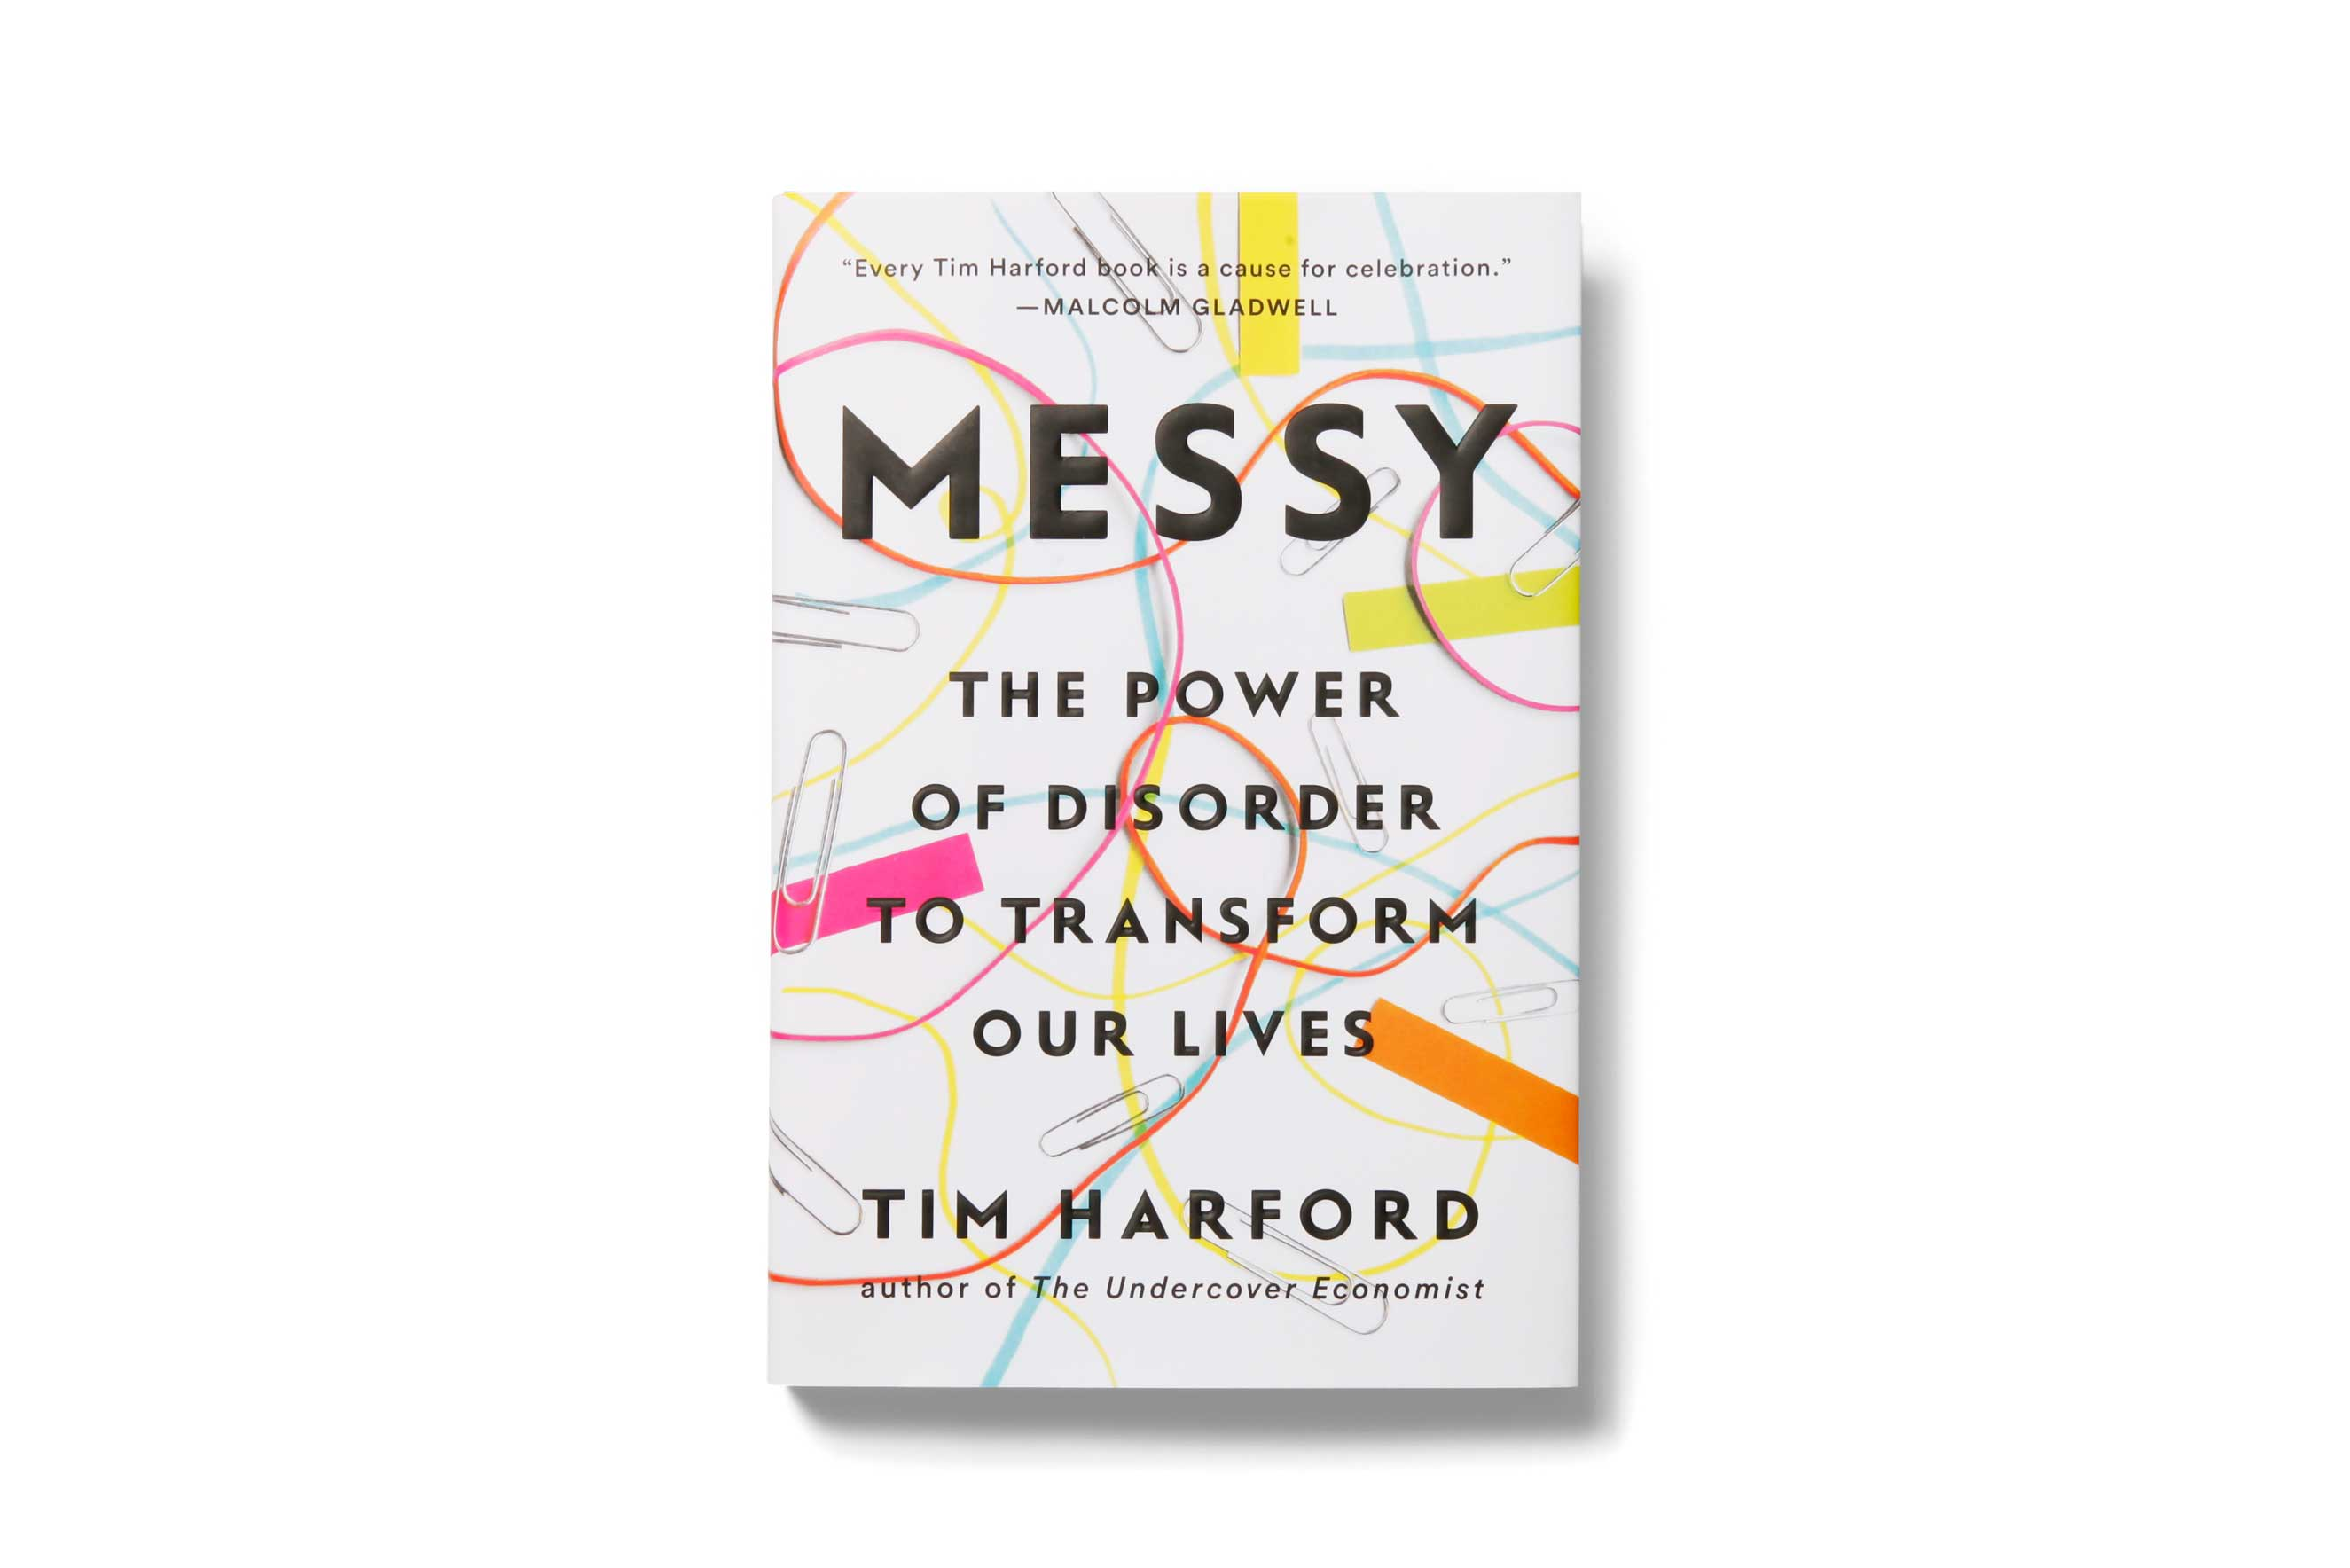 Book cover of 'Messy: The Power of Disorder to Transform Our Lives' by author, Tim Harford